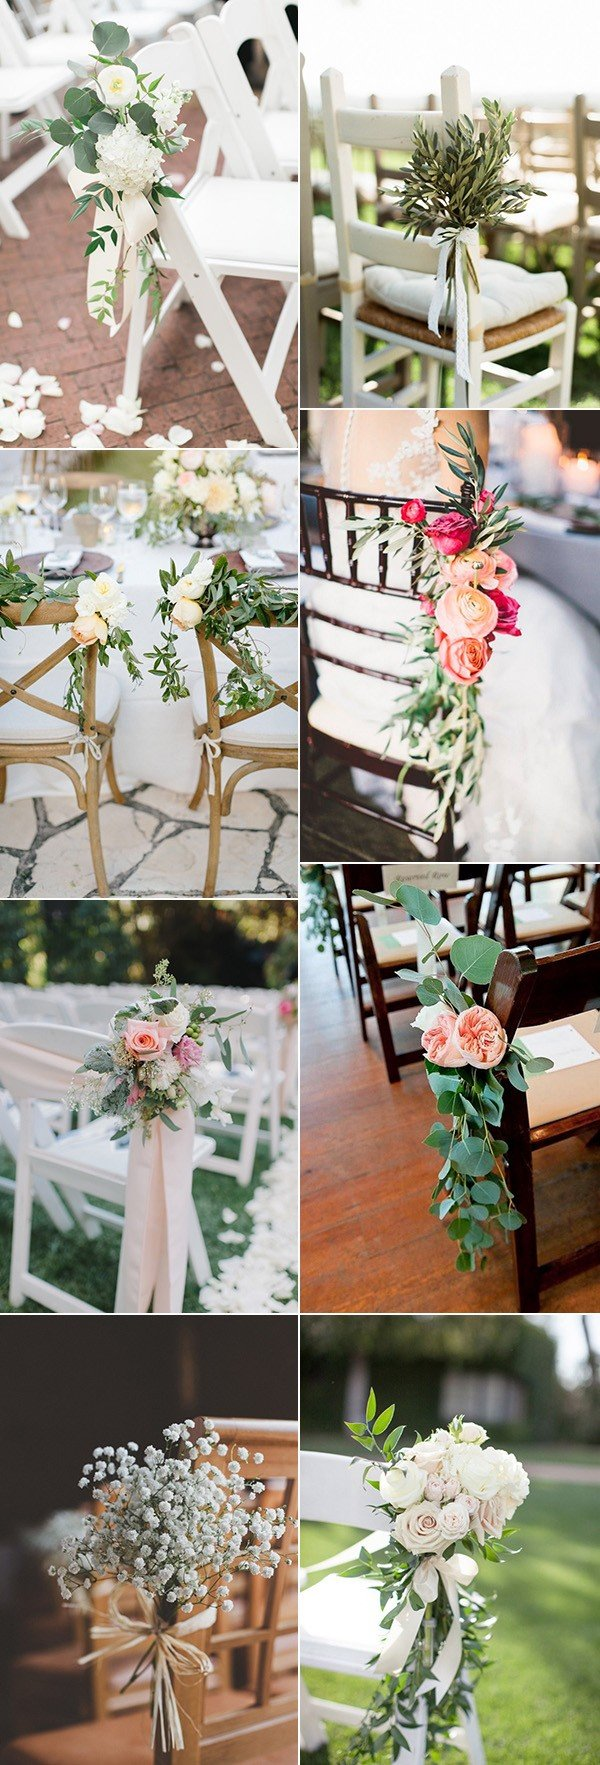 wedding chair decoration ideas with florals